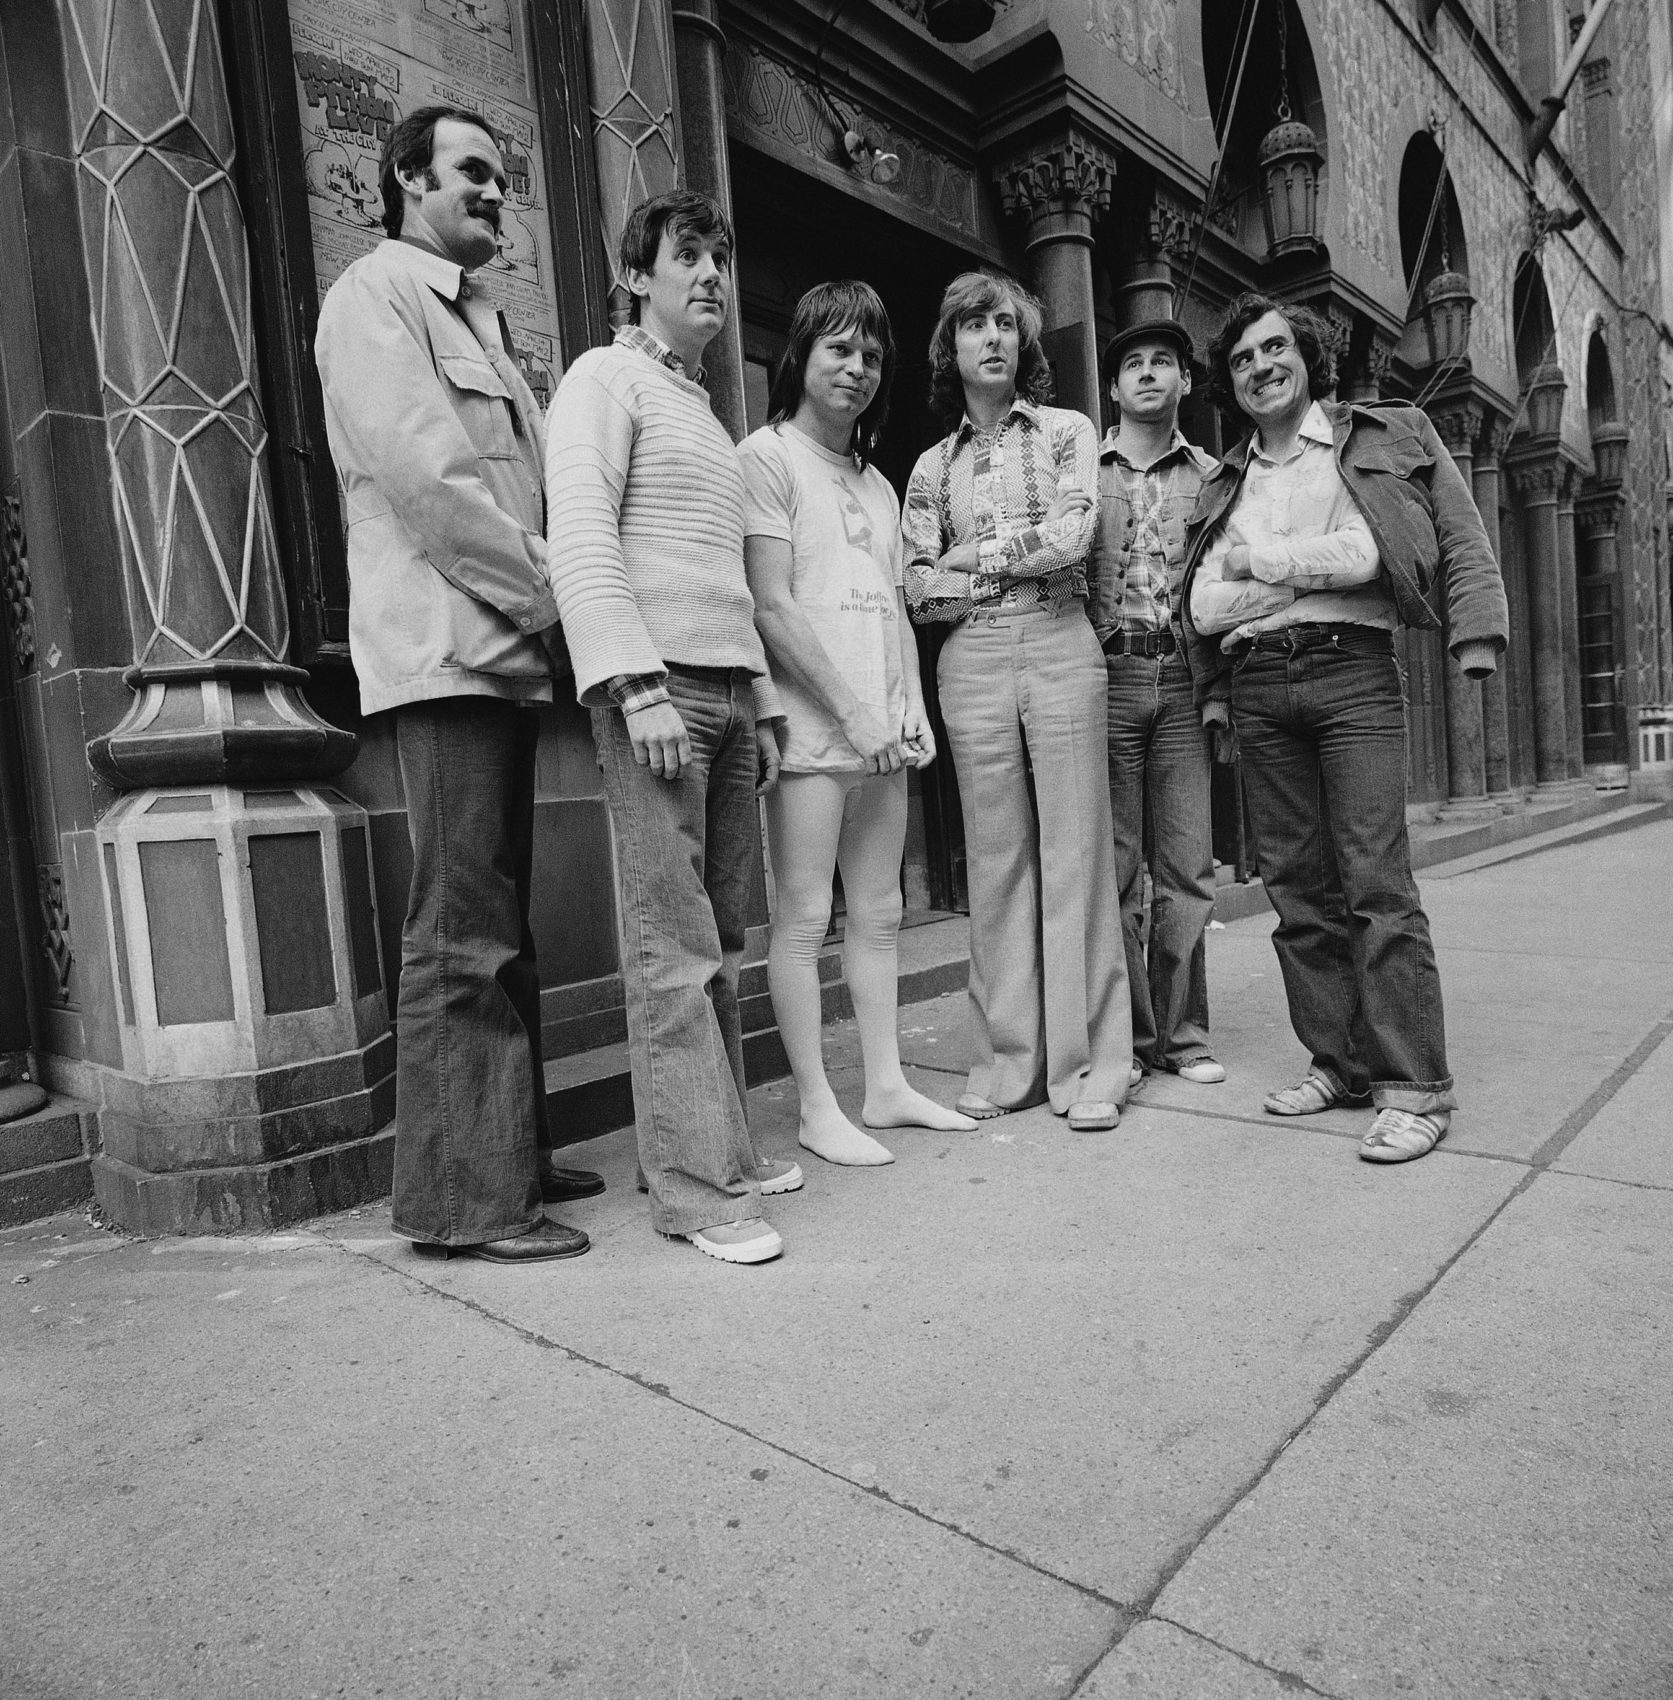 Monty Python members pose outside the City Center building in New York in 1976. From left to right: John Cleese, Michael Palin, Terry Gilliam, Eric Idle, Neil Innes, Terry Jones. (Suzanne Vlamis/AP)